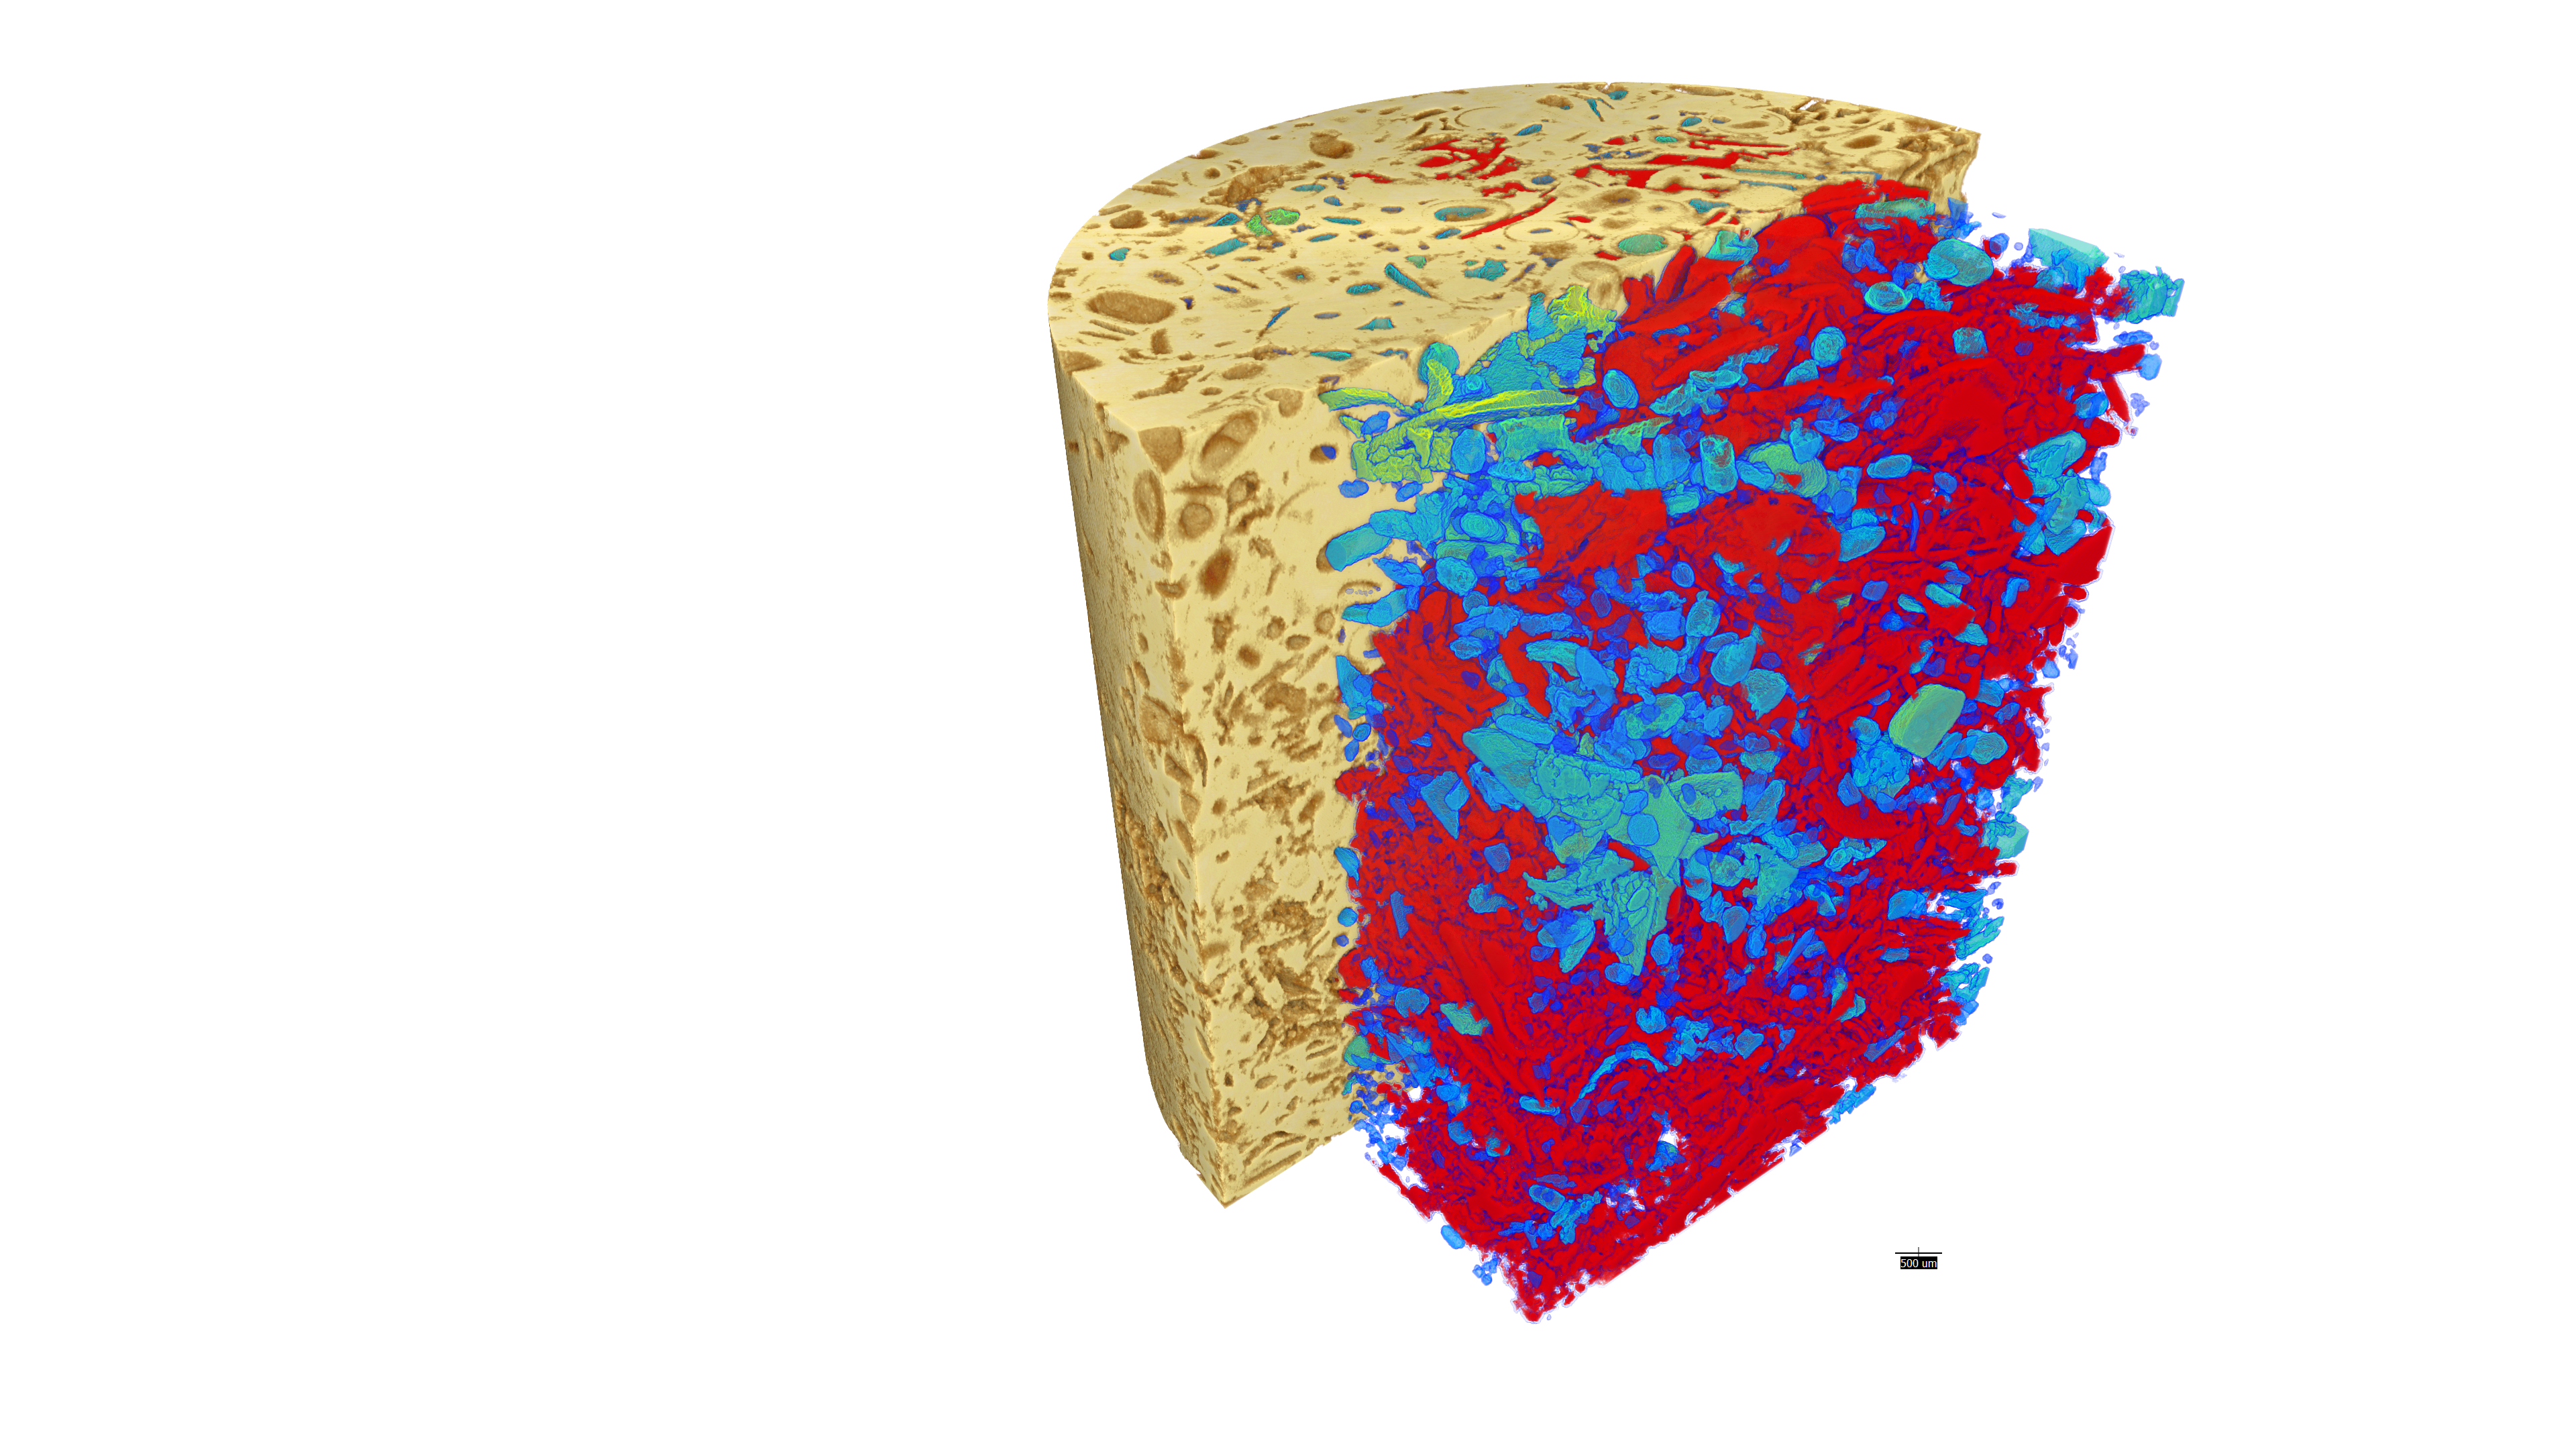 Carbonate – segmented volume of interest scan (VOIS) - Open porosity calculation